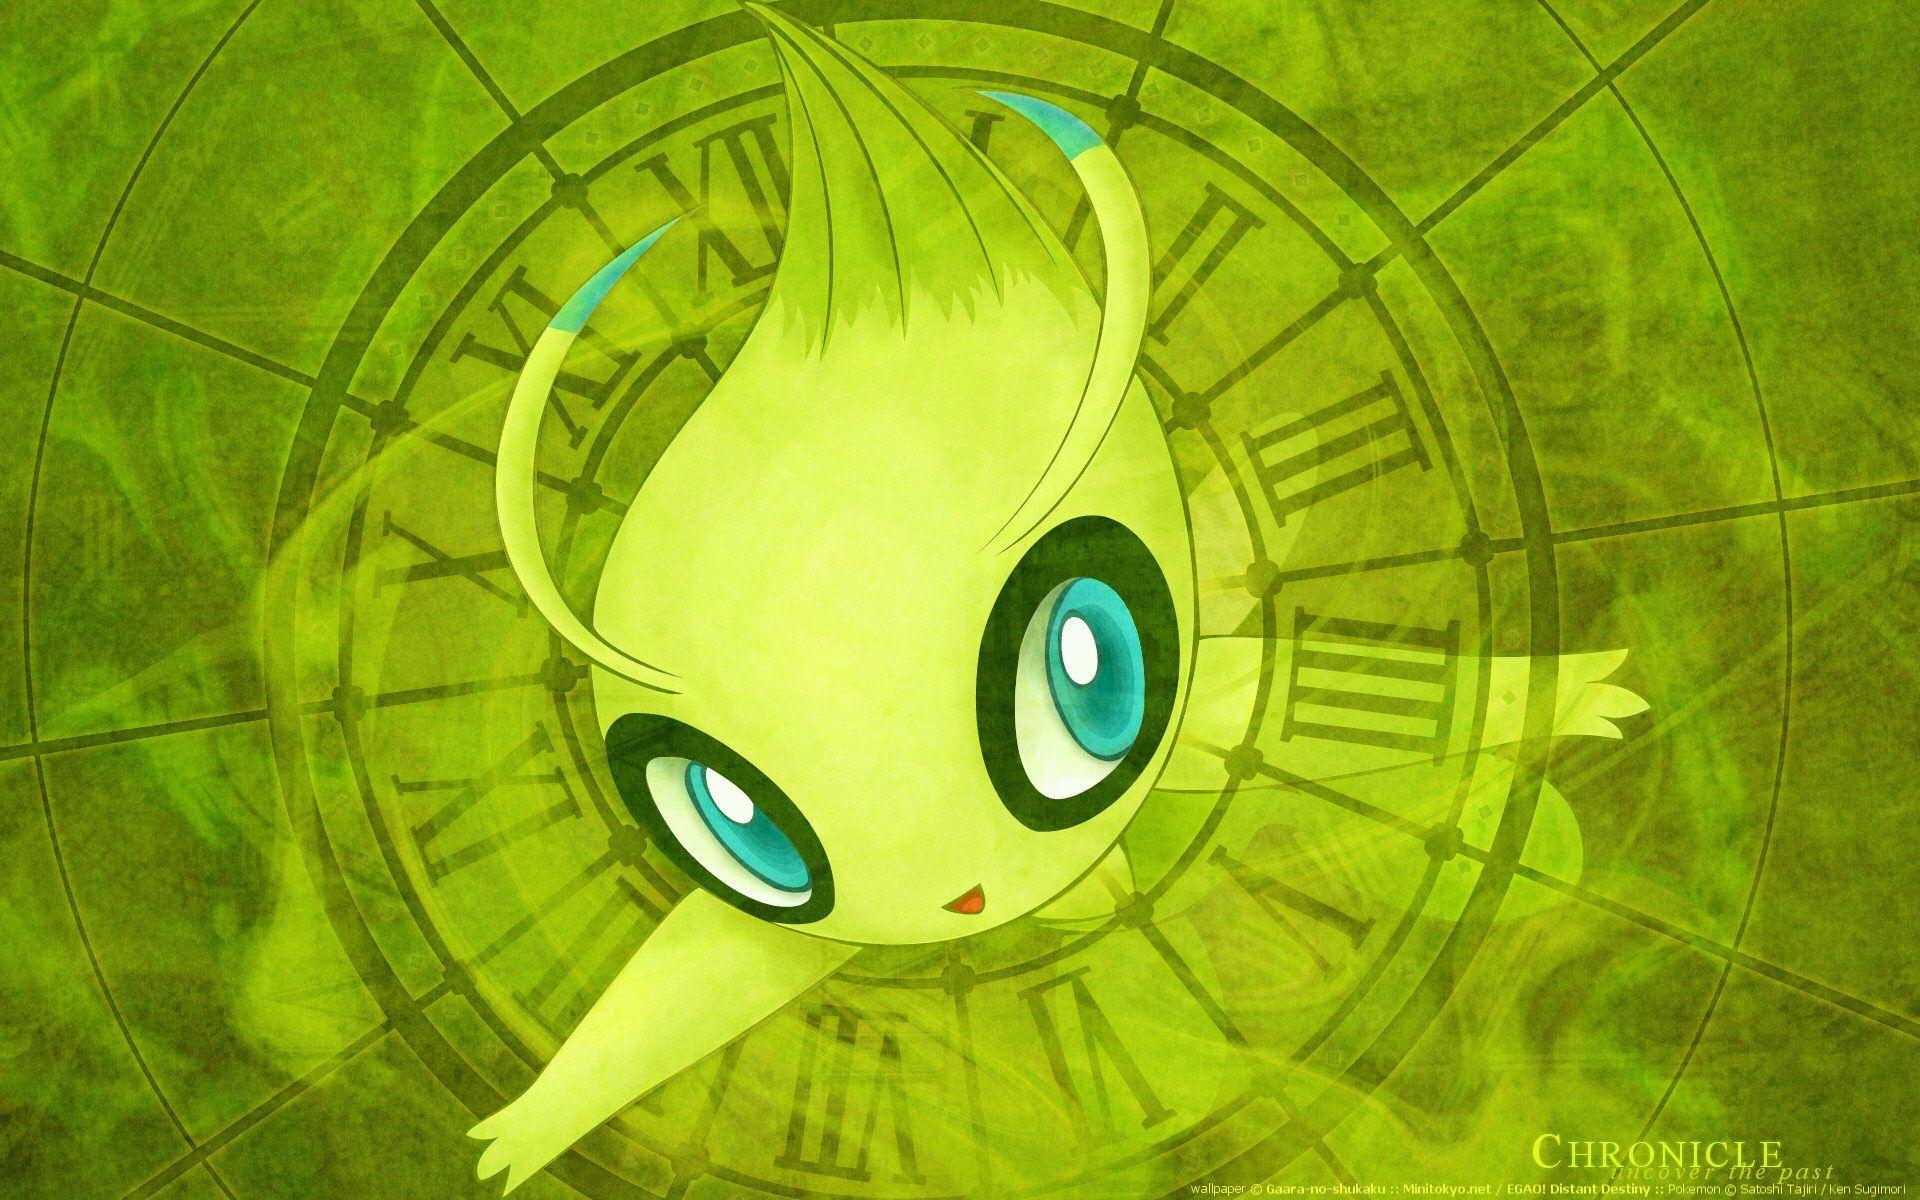 13 Celebi (Pokémon) HD Wallpapers | Background Images - Wallpaper Abyss